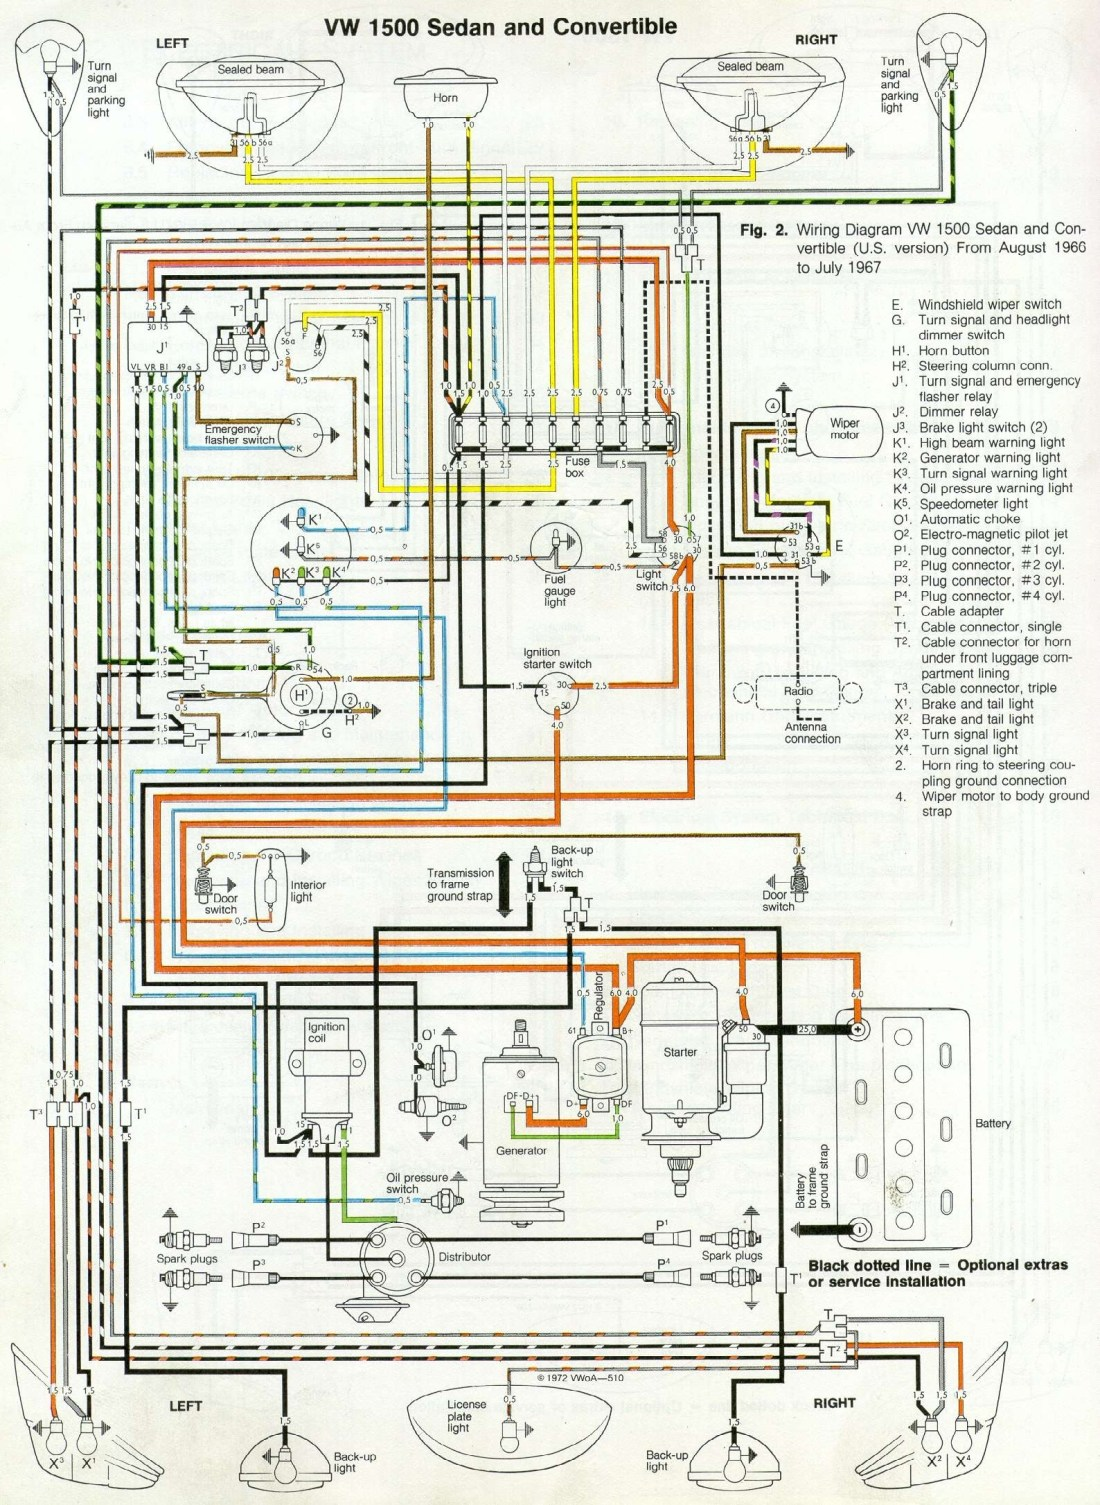 '66 and '67 VW Beetle Wiring Diagram – 1967 VW Beetle